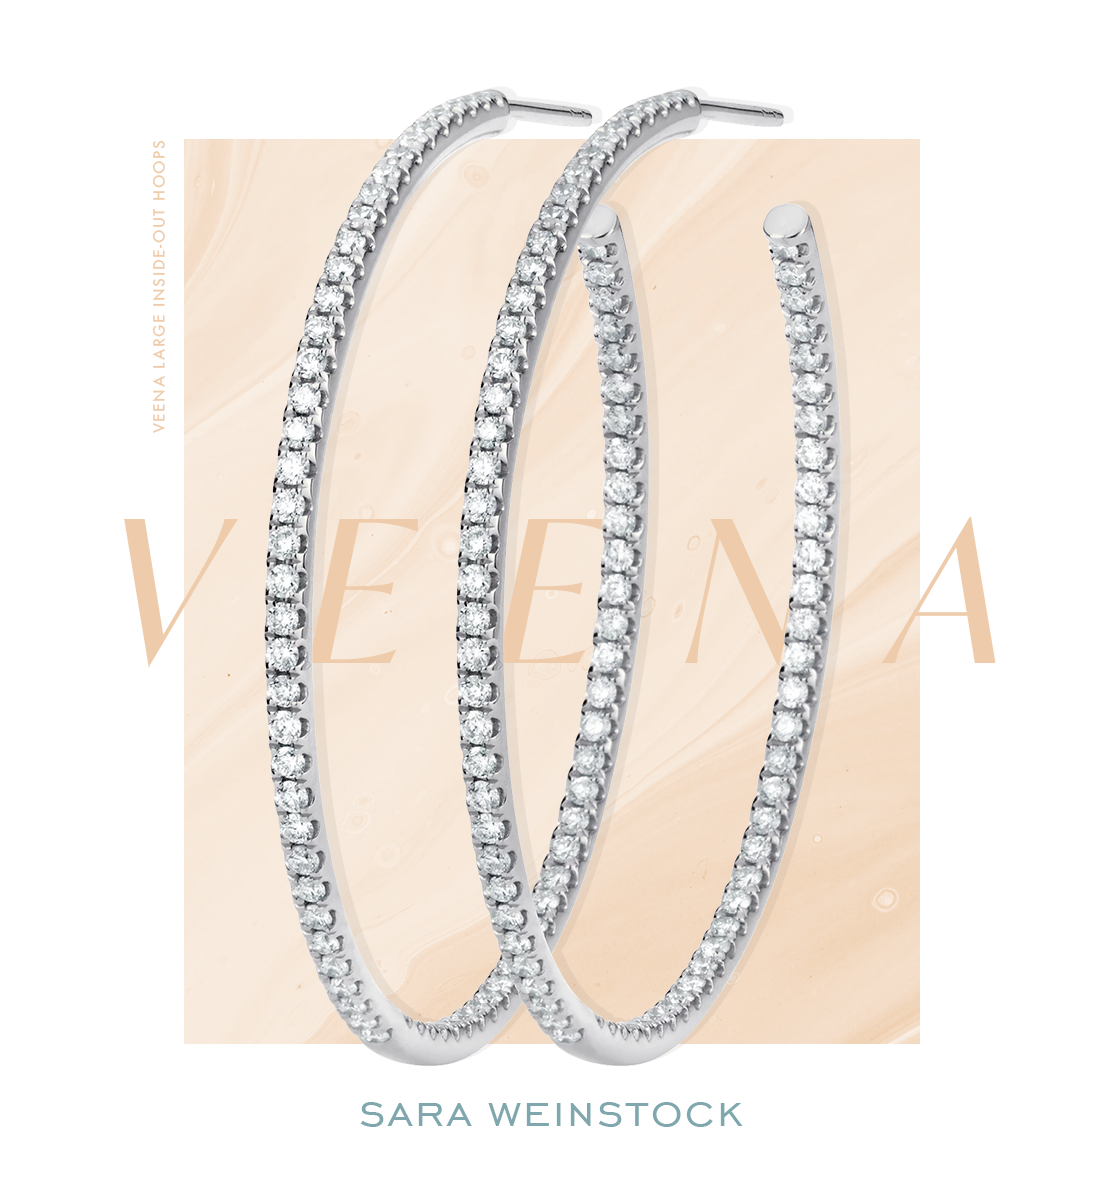 Veena Large Inside-Out Hoops